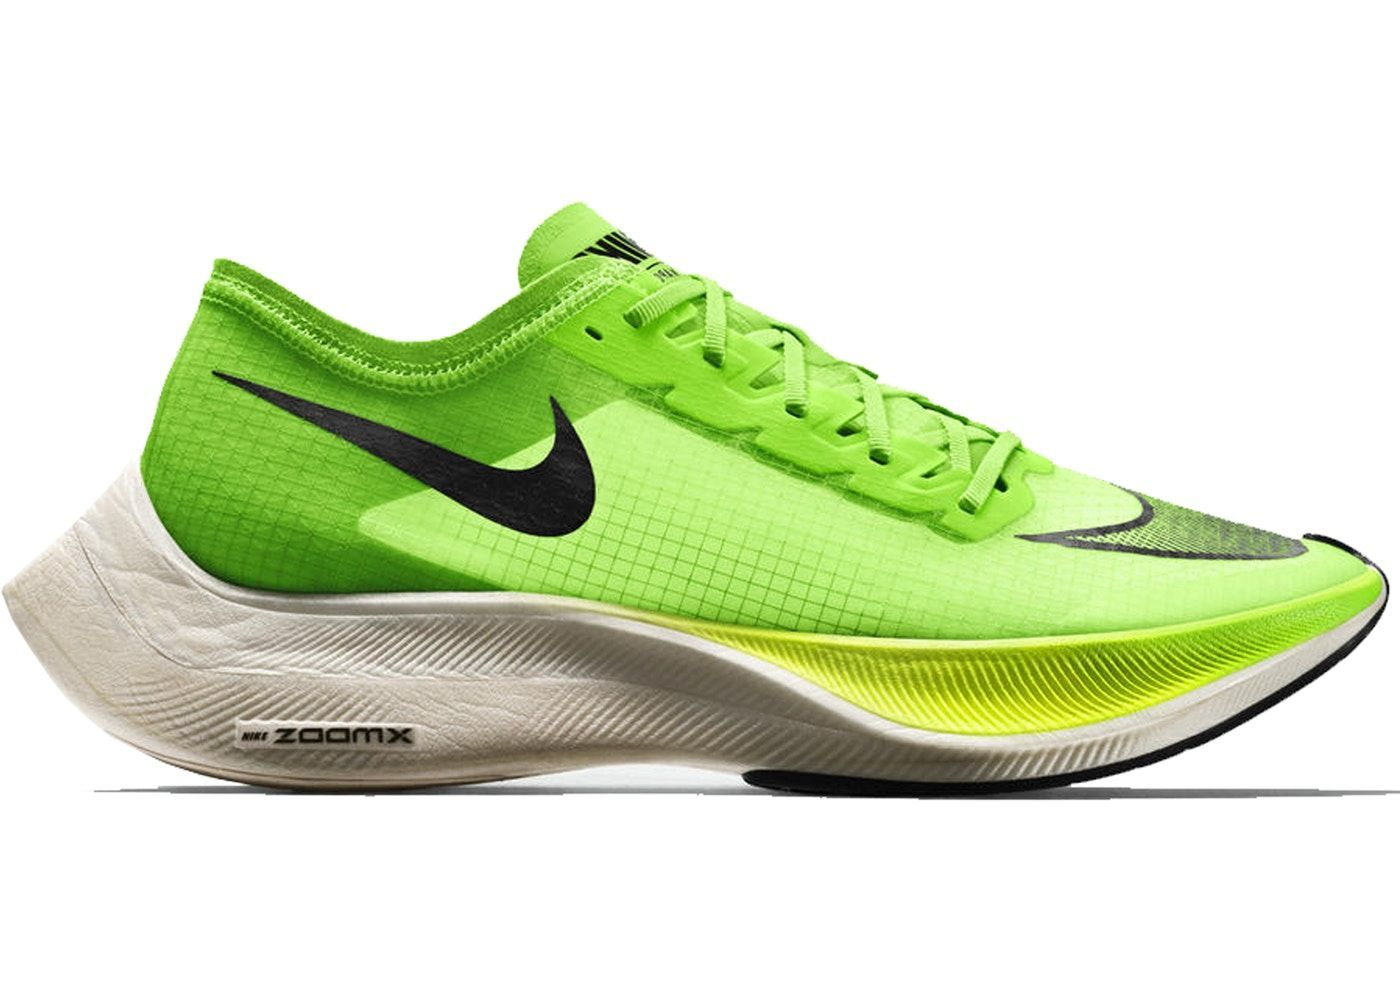 Enmarañarse Probablemente cable  Nike Running Shoes for Women | Best Women's Nikes 2019